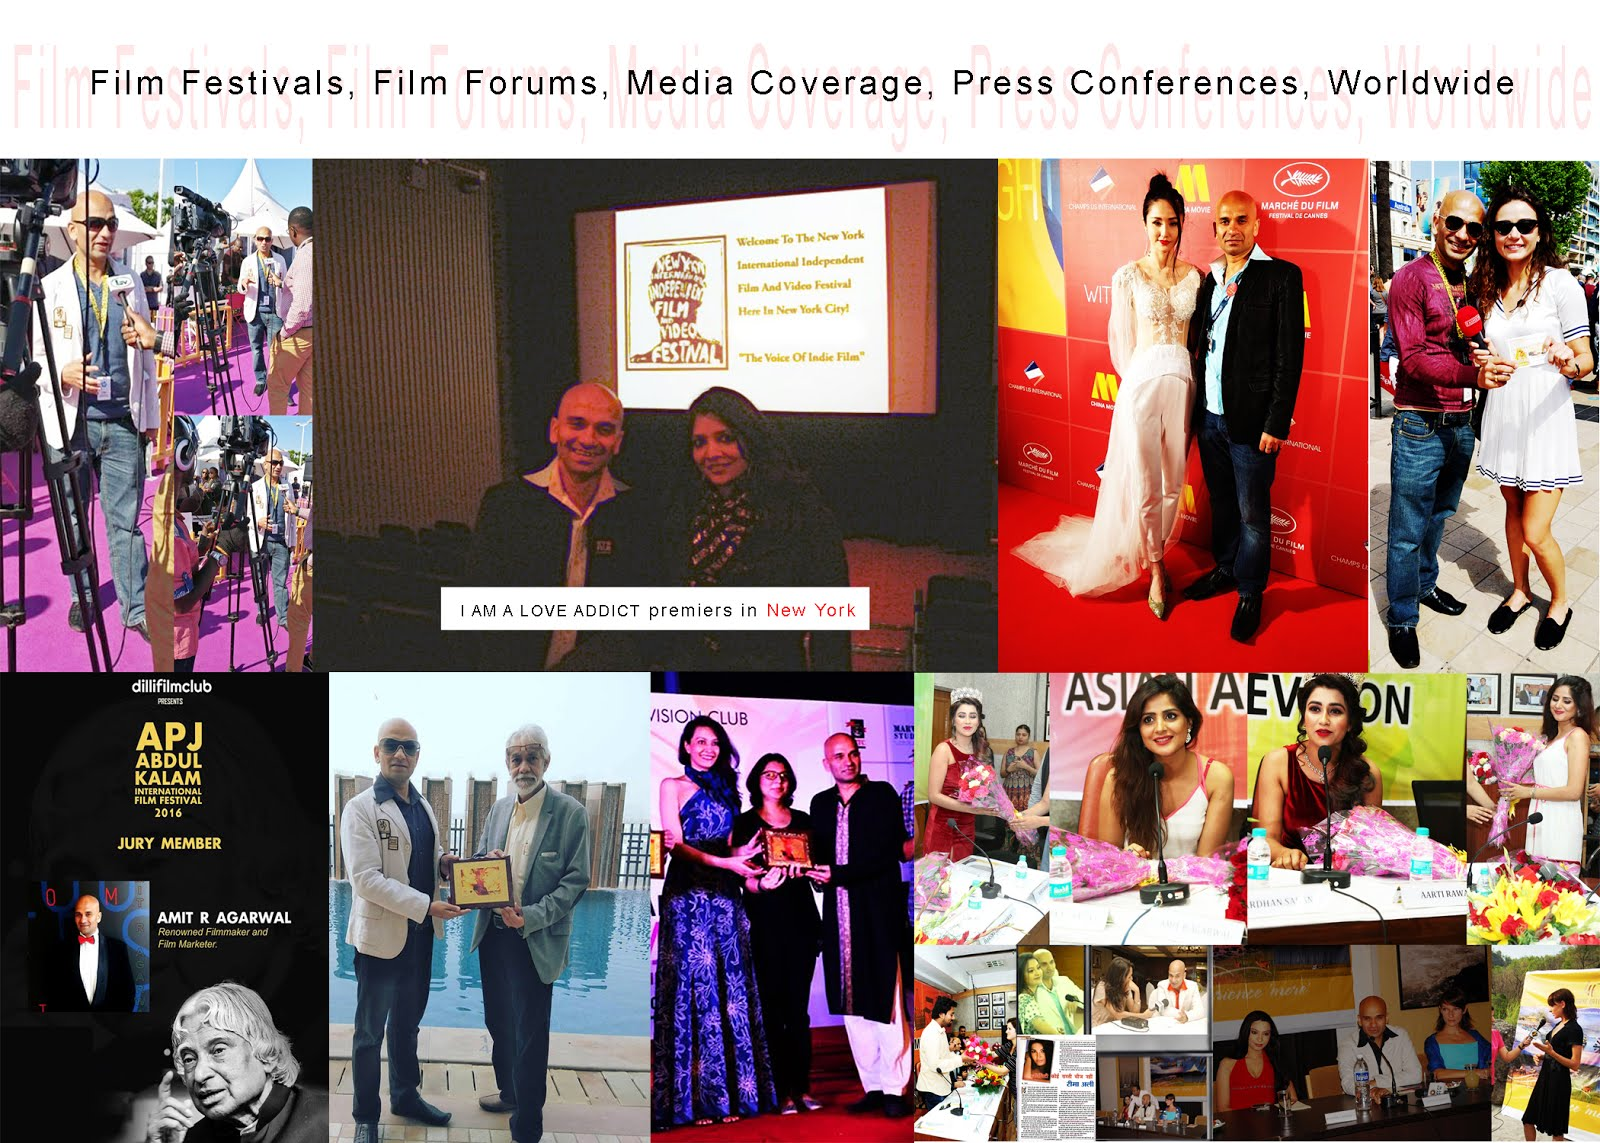 Film Festivals, Film Forums, Media Coverage, Press Conferences, Worldwide